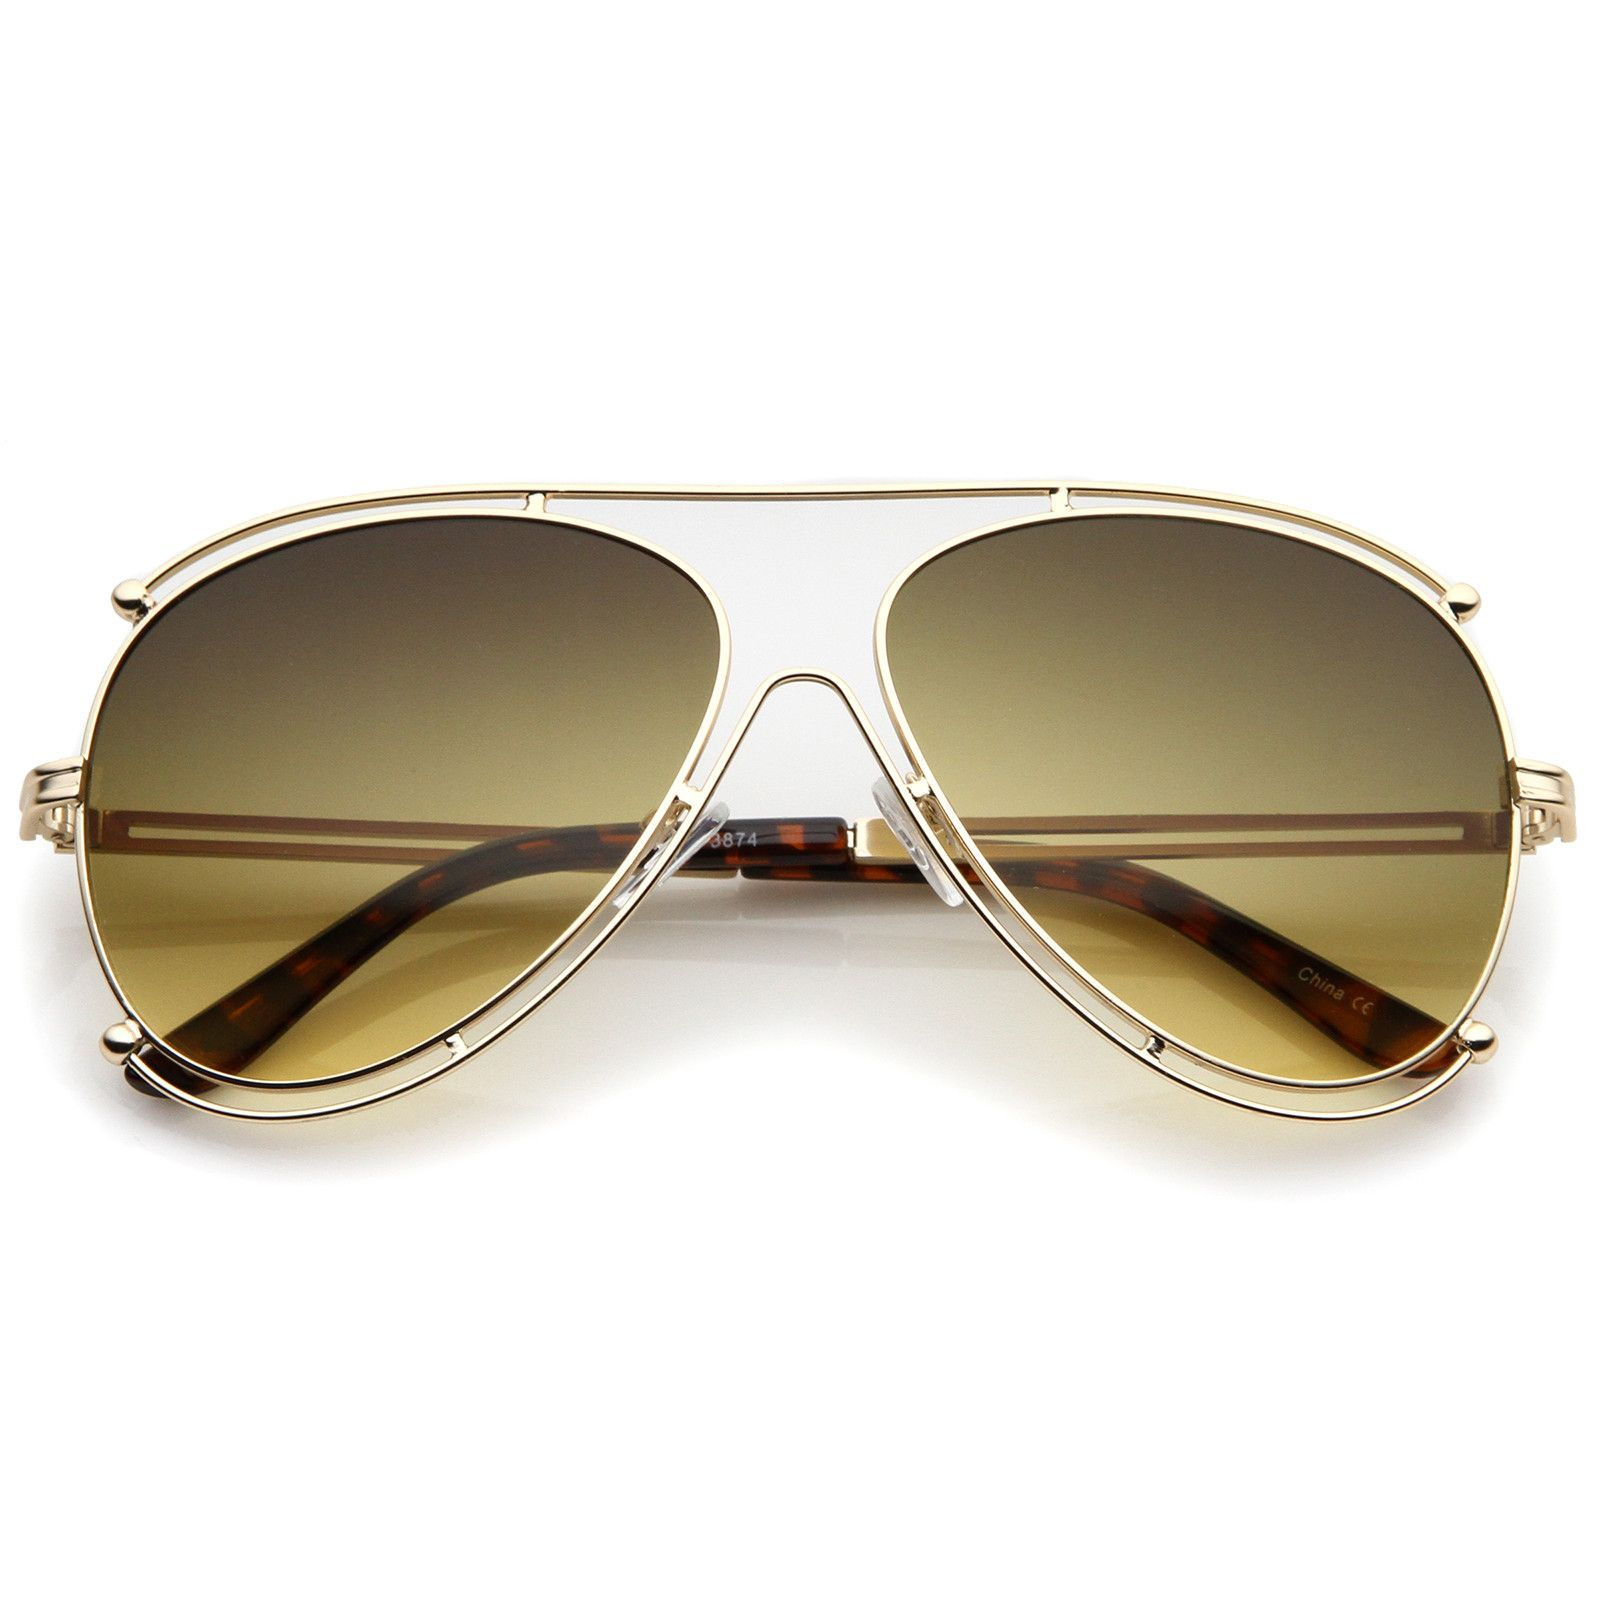 7aa6a90b5fdb2 New Vintage Matsuda 10611 Matte Gold Side Cups 1990 s Made in Japan  Sunglasses